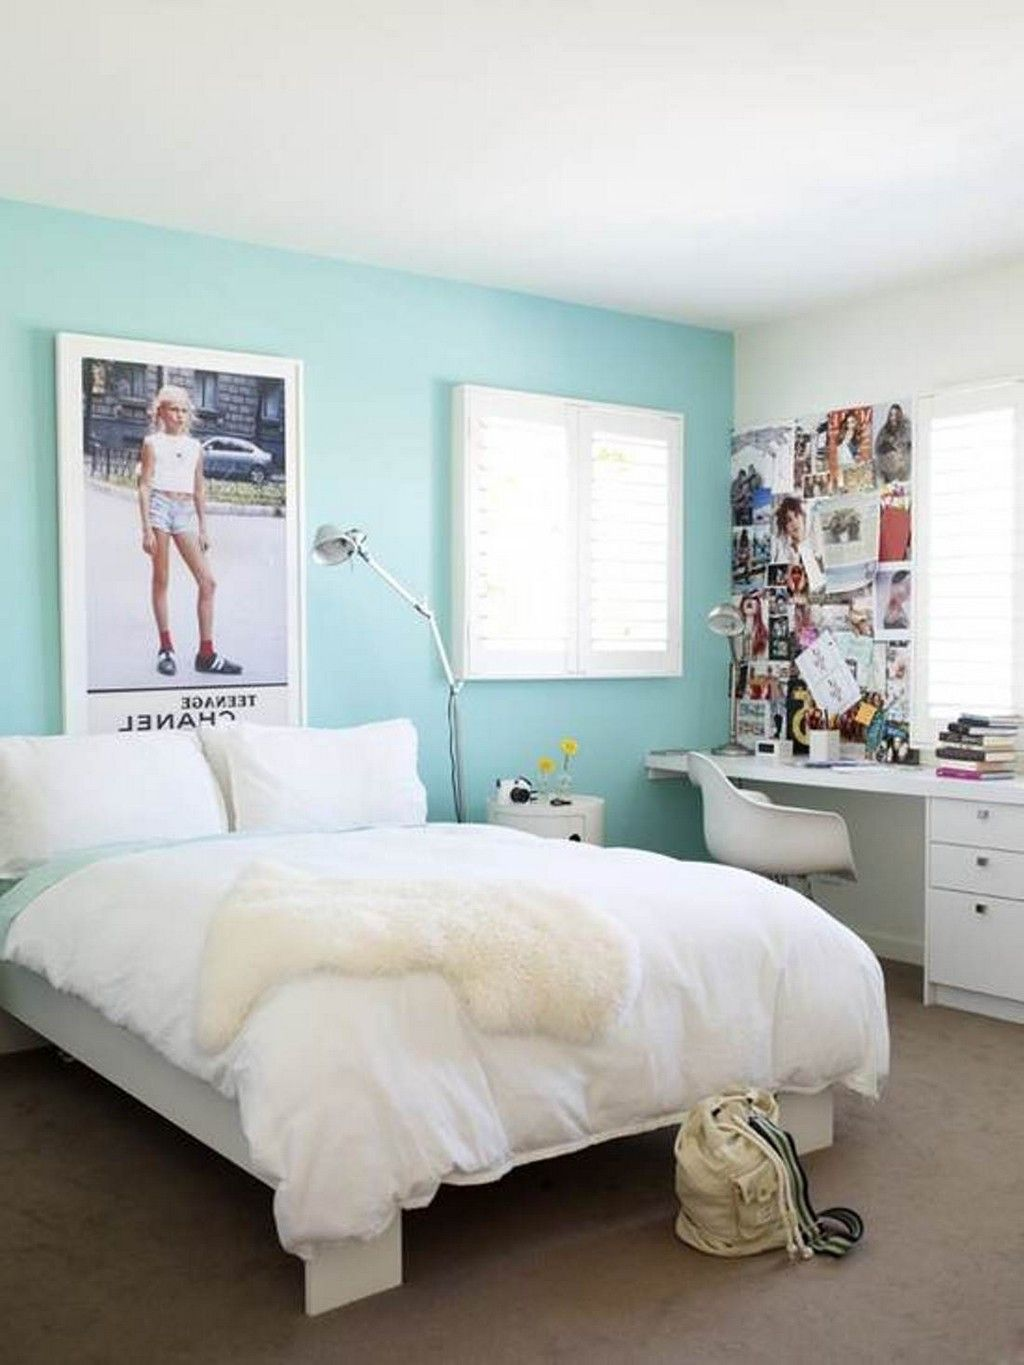 Blue room colors for teens - Bedroom Calming Blue Paint Colors For Small Teen Bedroom Ideas